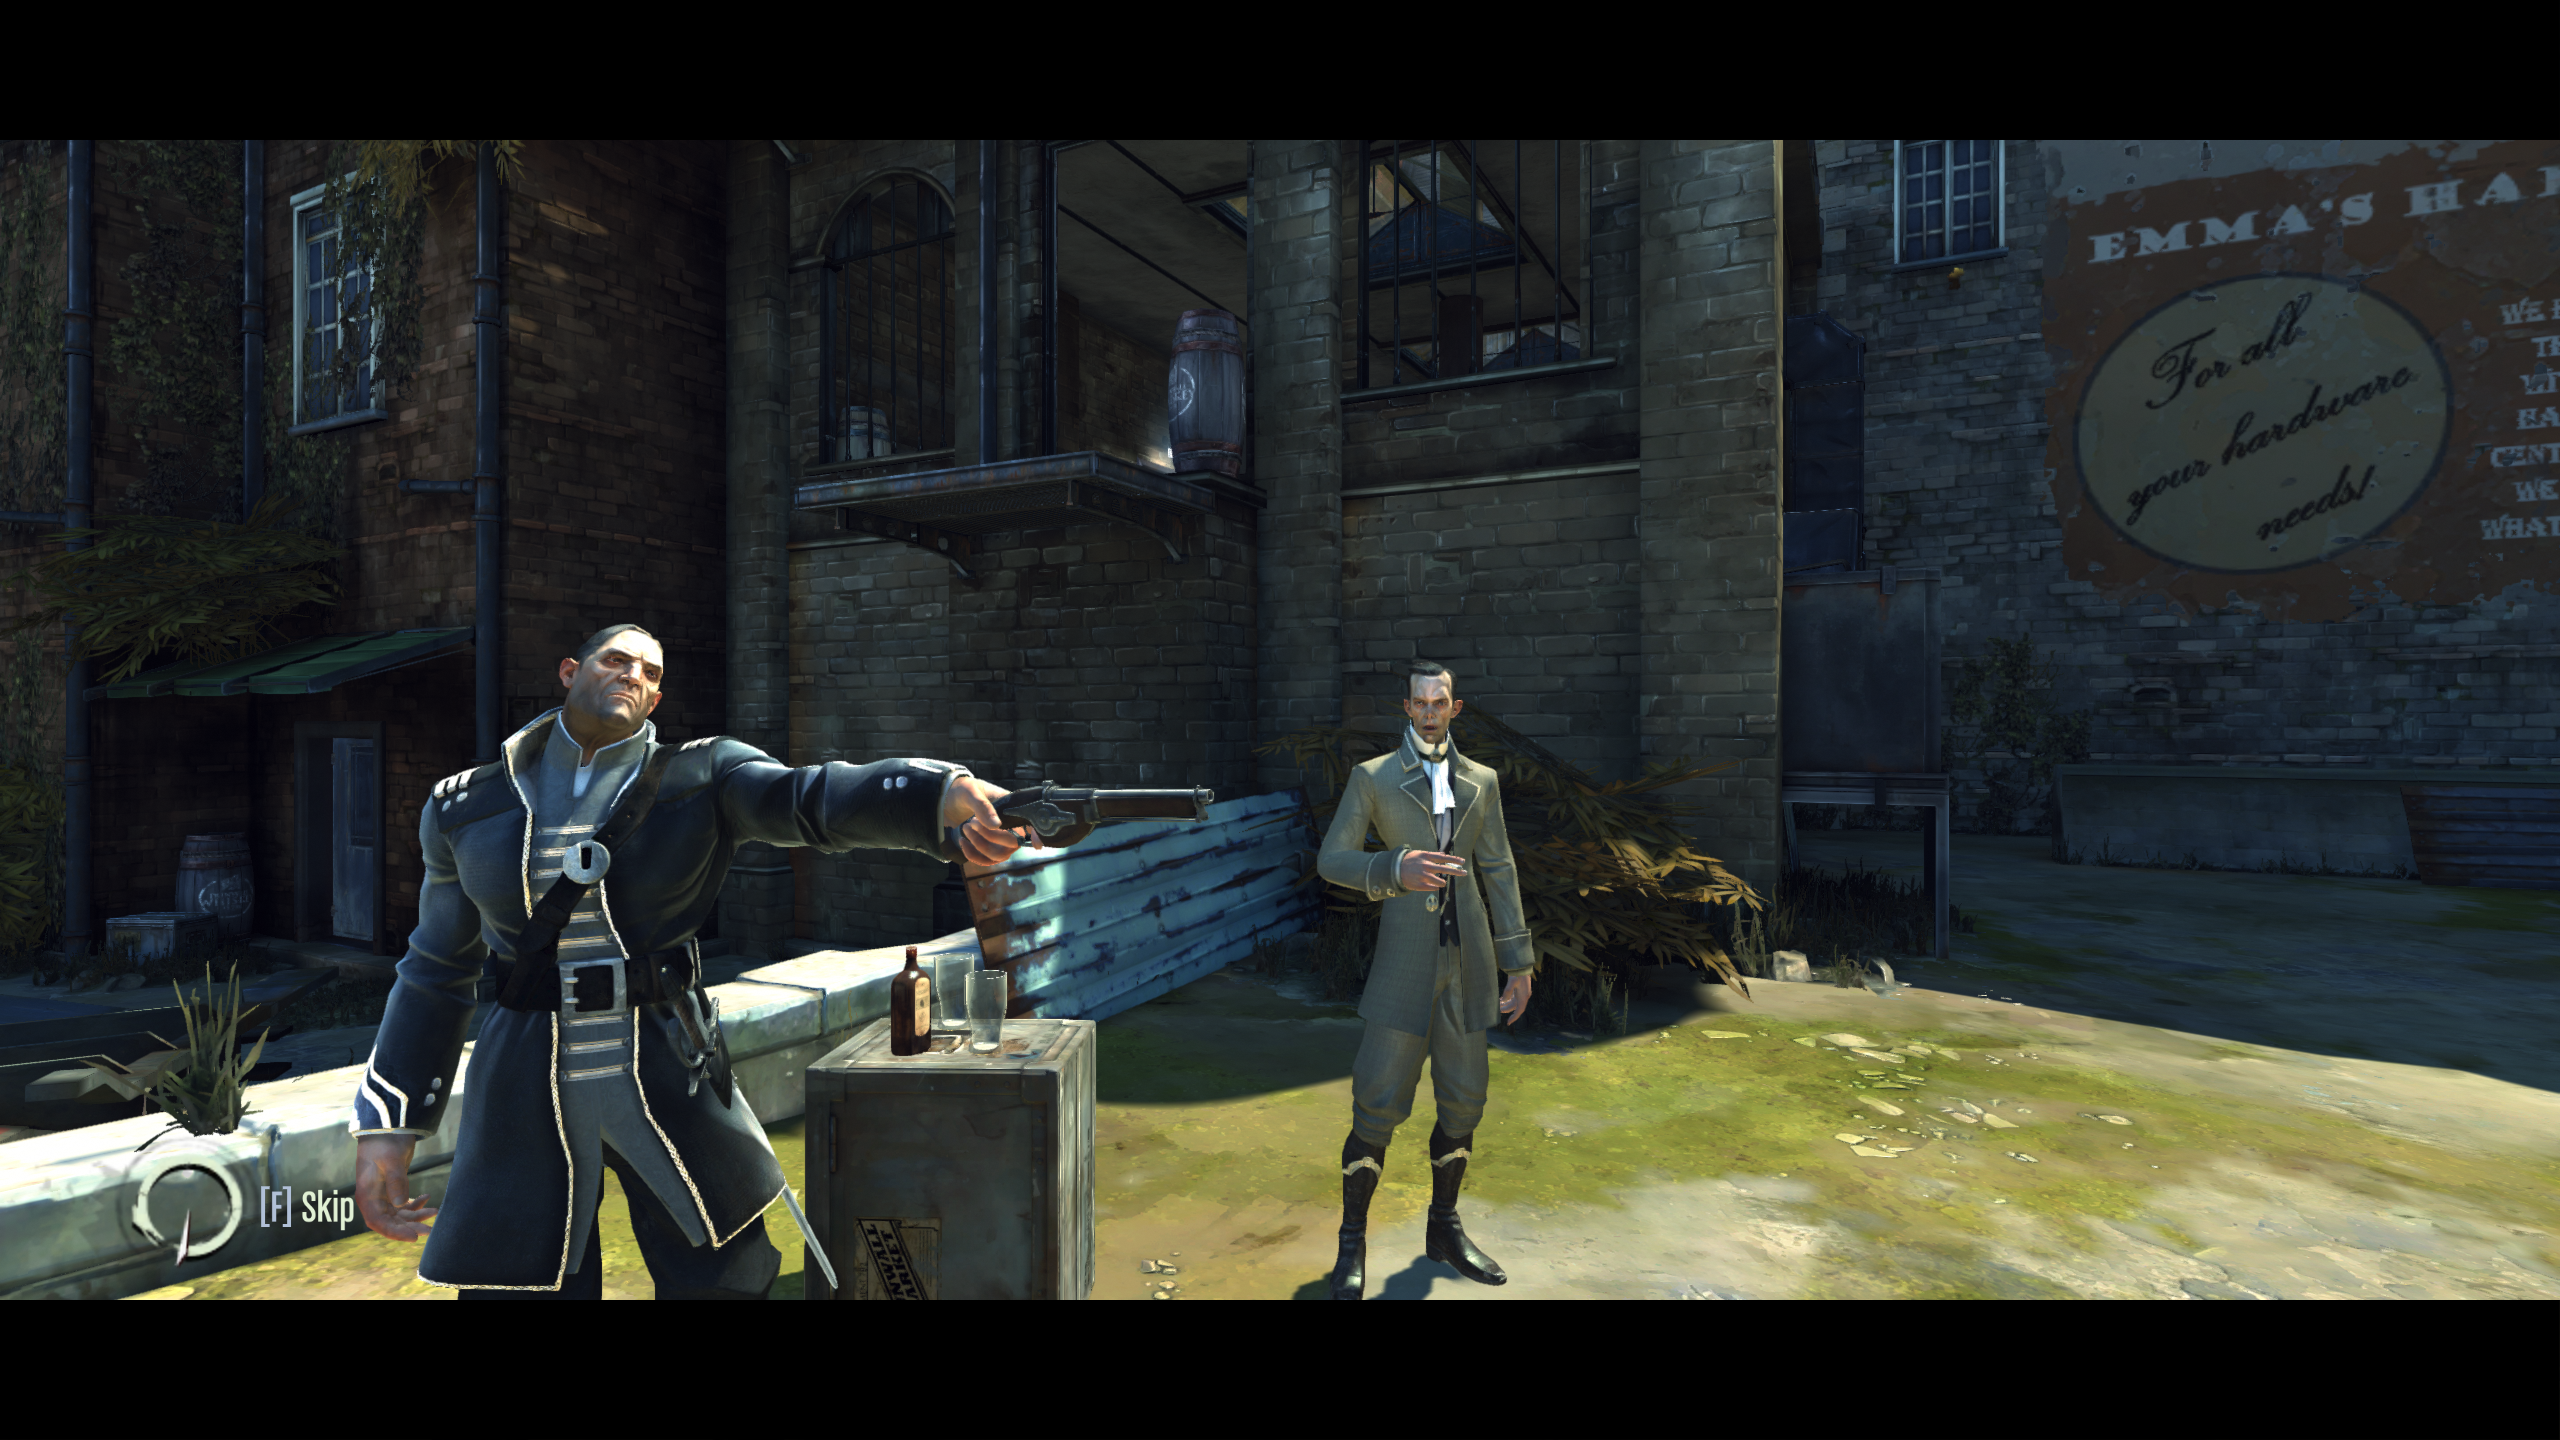 That's Treavor Pendleton in the back, and Havelock with the pistol.